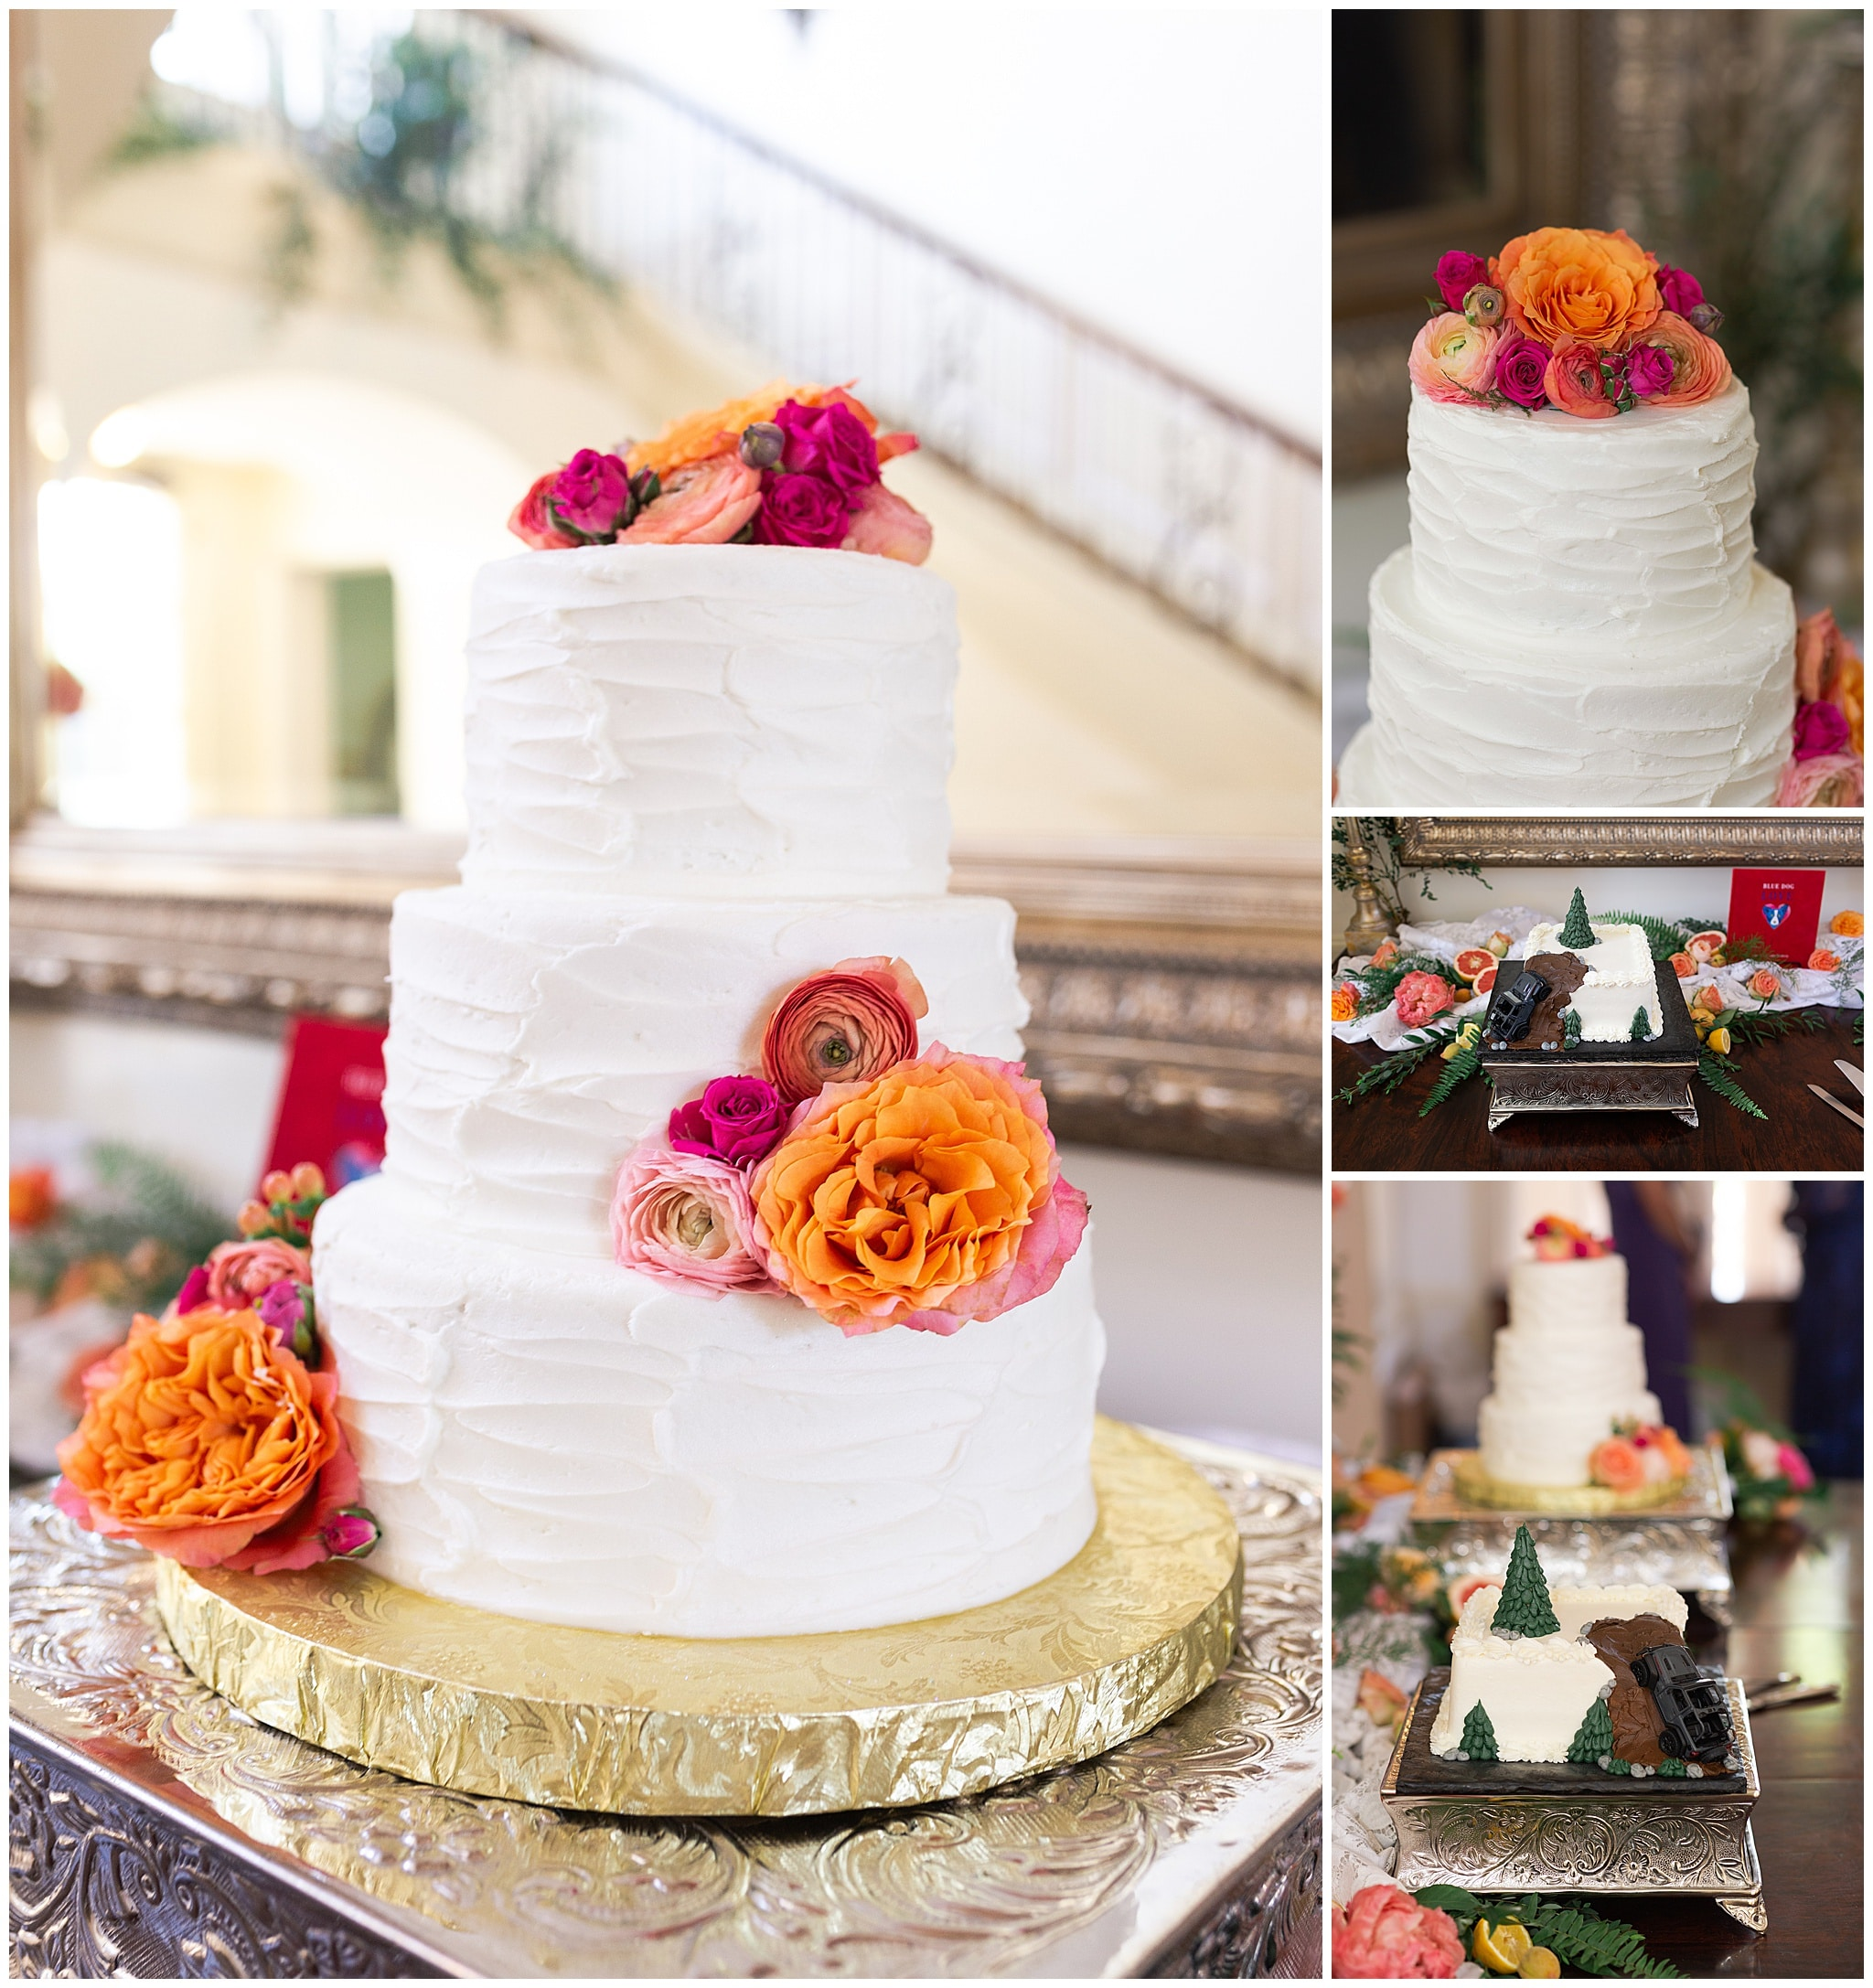 wedding cake at Astin Mansion in Bryan Texas by Swish and Click Photography